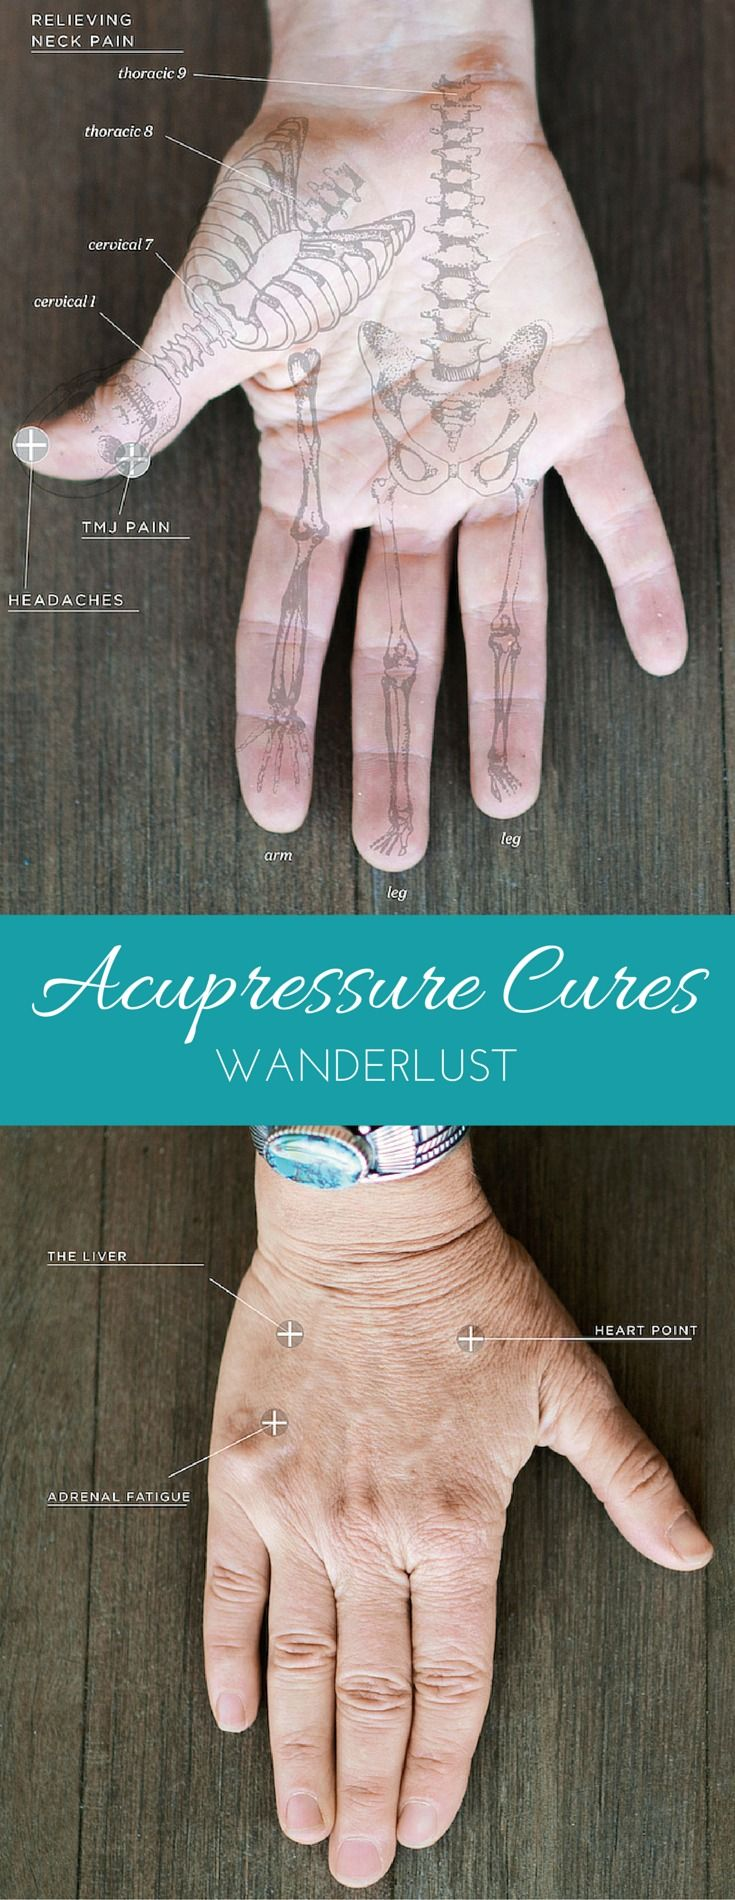 5 Acupressure Cures to Try Right Now